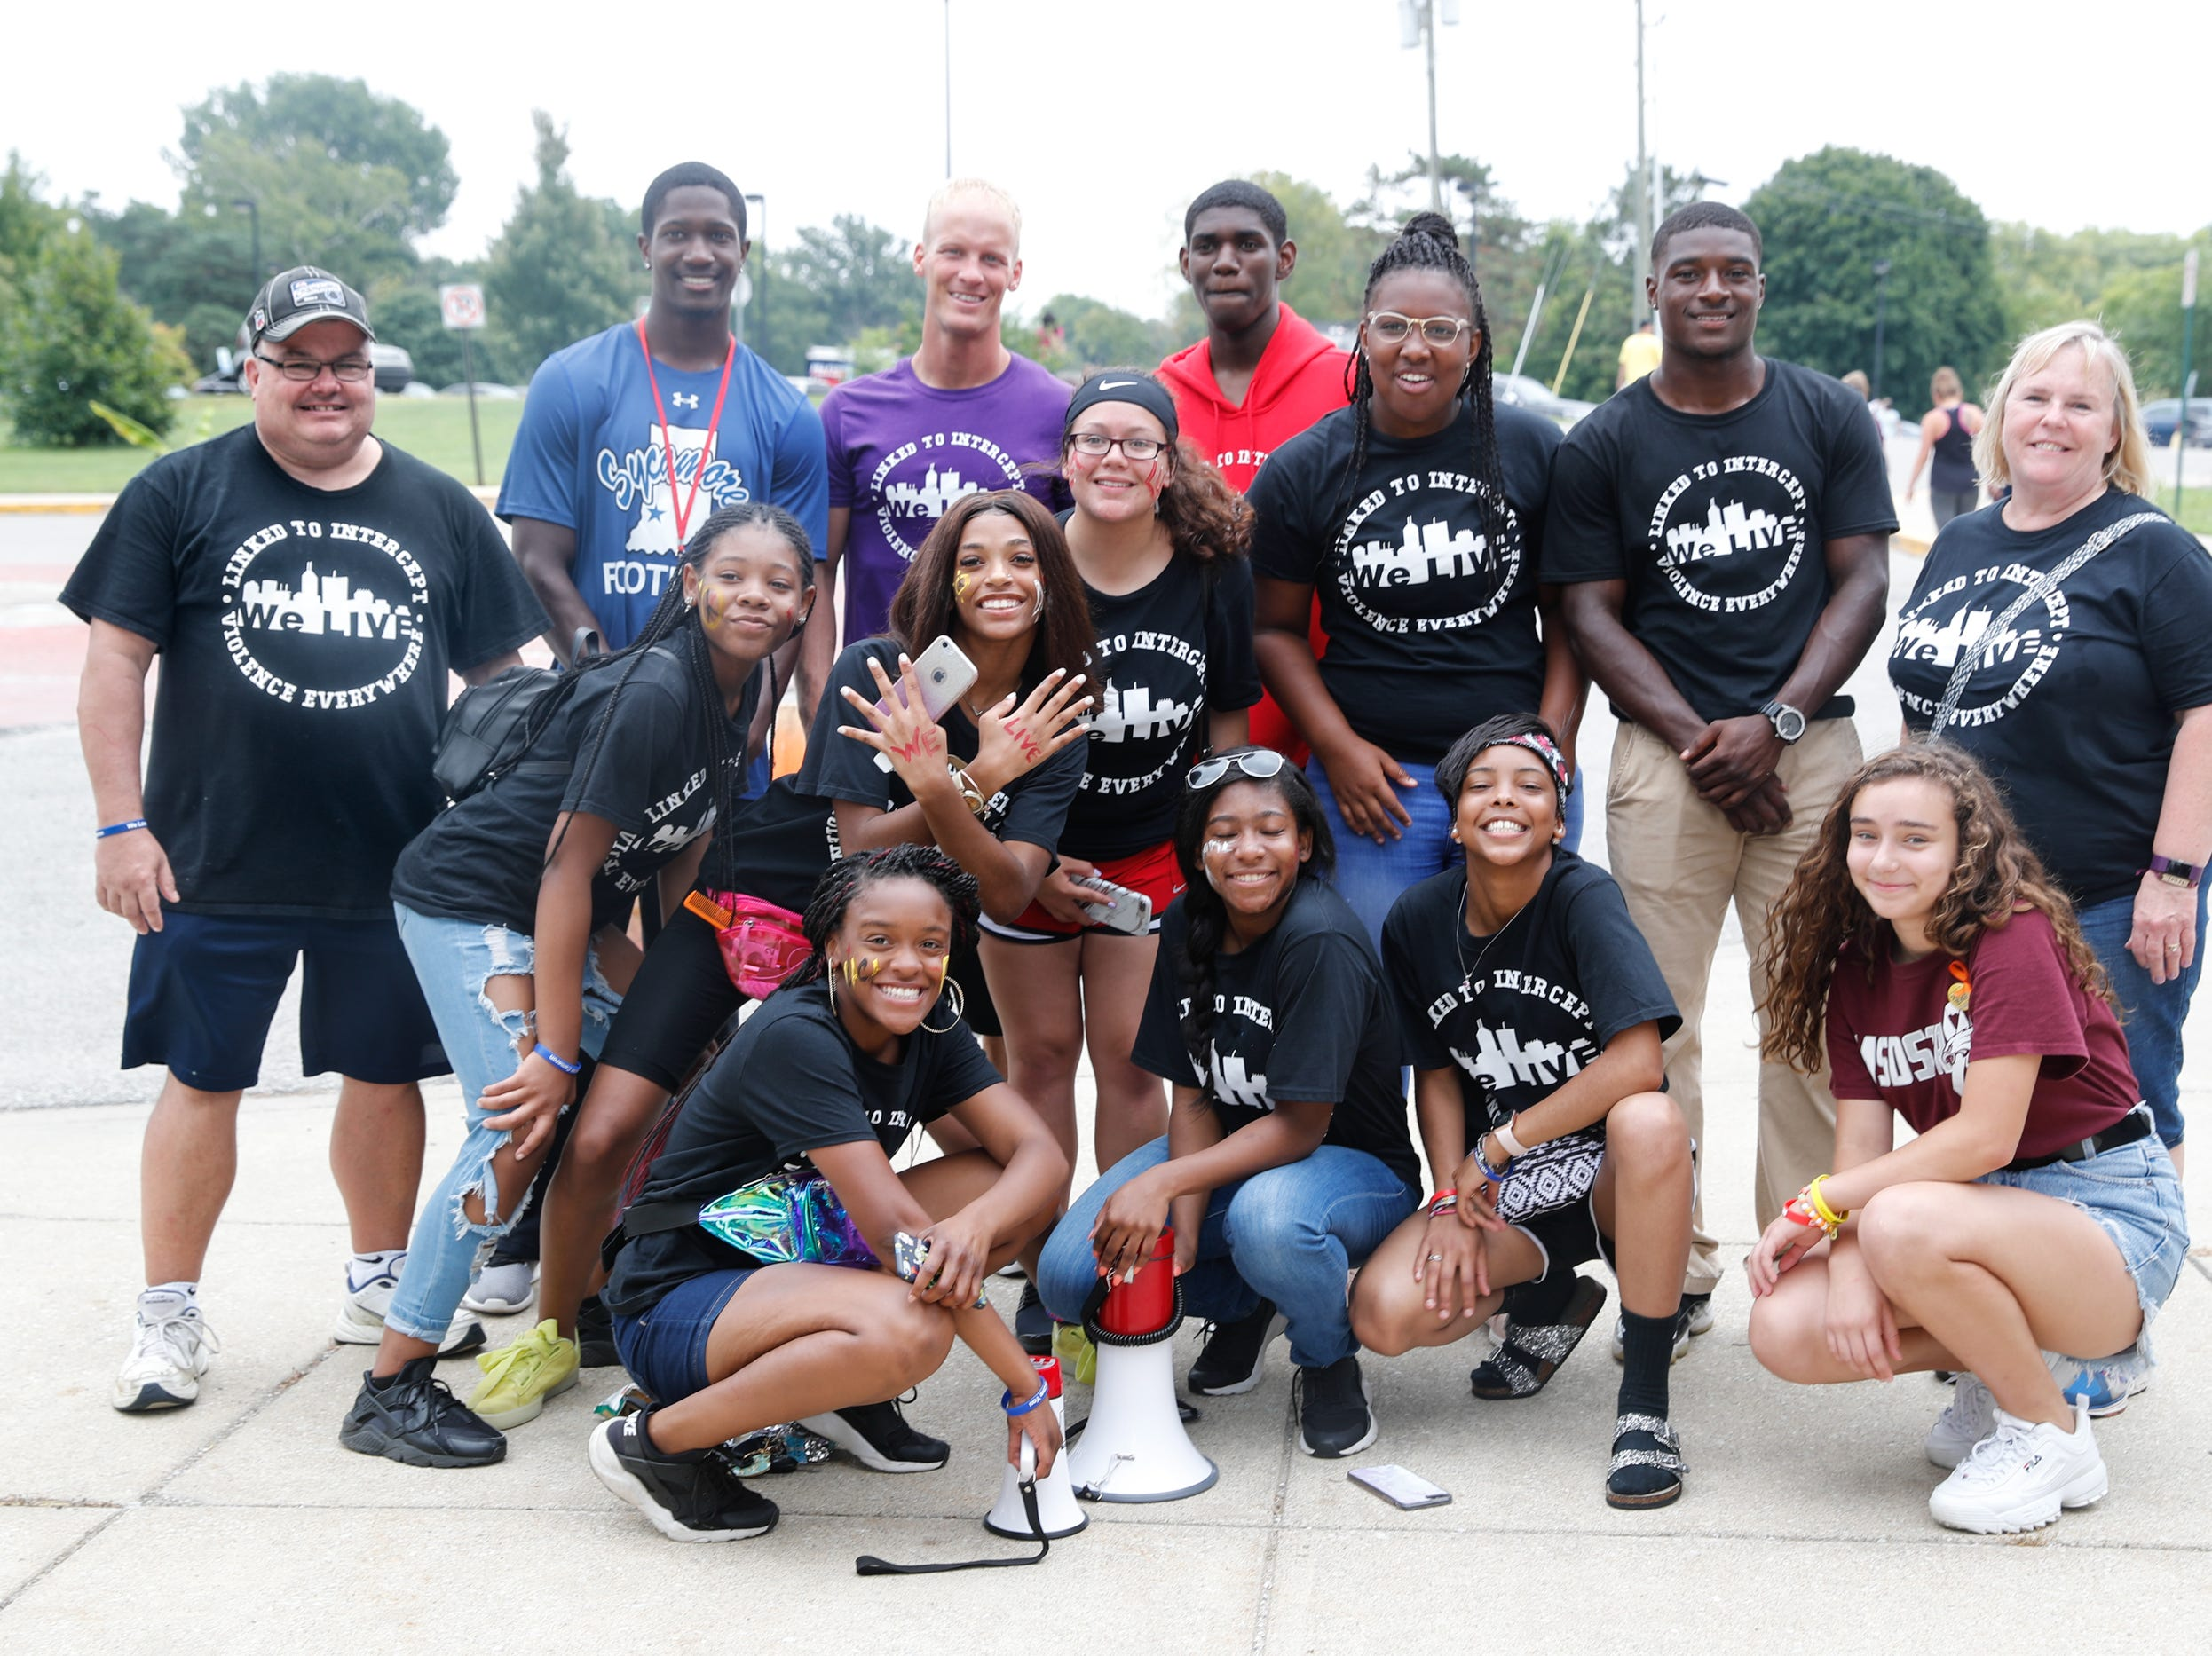 Members of 'We Live' pose for a group photo during their second annual Peace Walk and Community Day to end youth violence at Washington Park on Saturday, Aug. 11, 2018. 'We Live,' which stands for 'Linked To Intercept Violence' was started by students from Warren Central High School in Indianapolis.